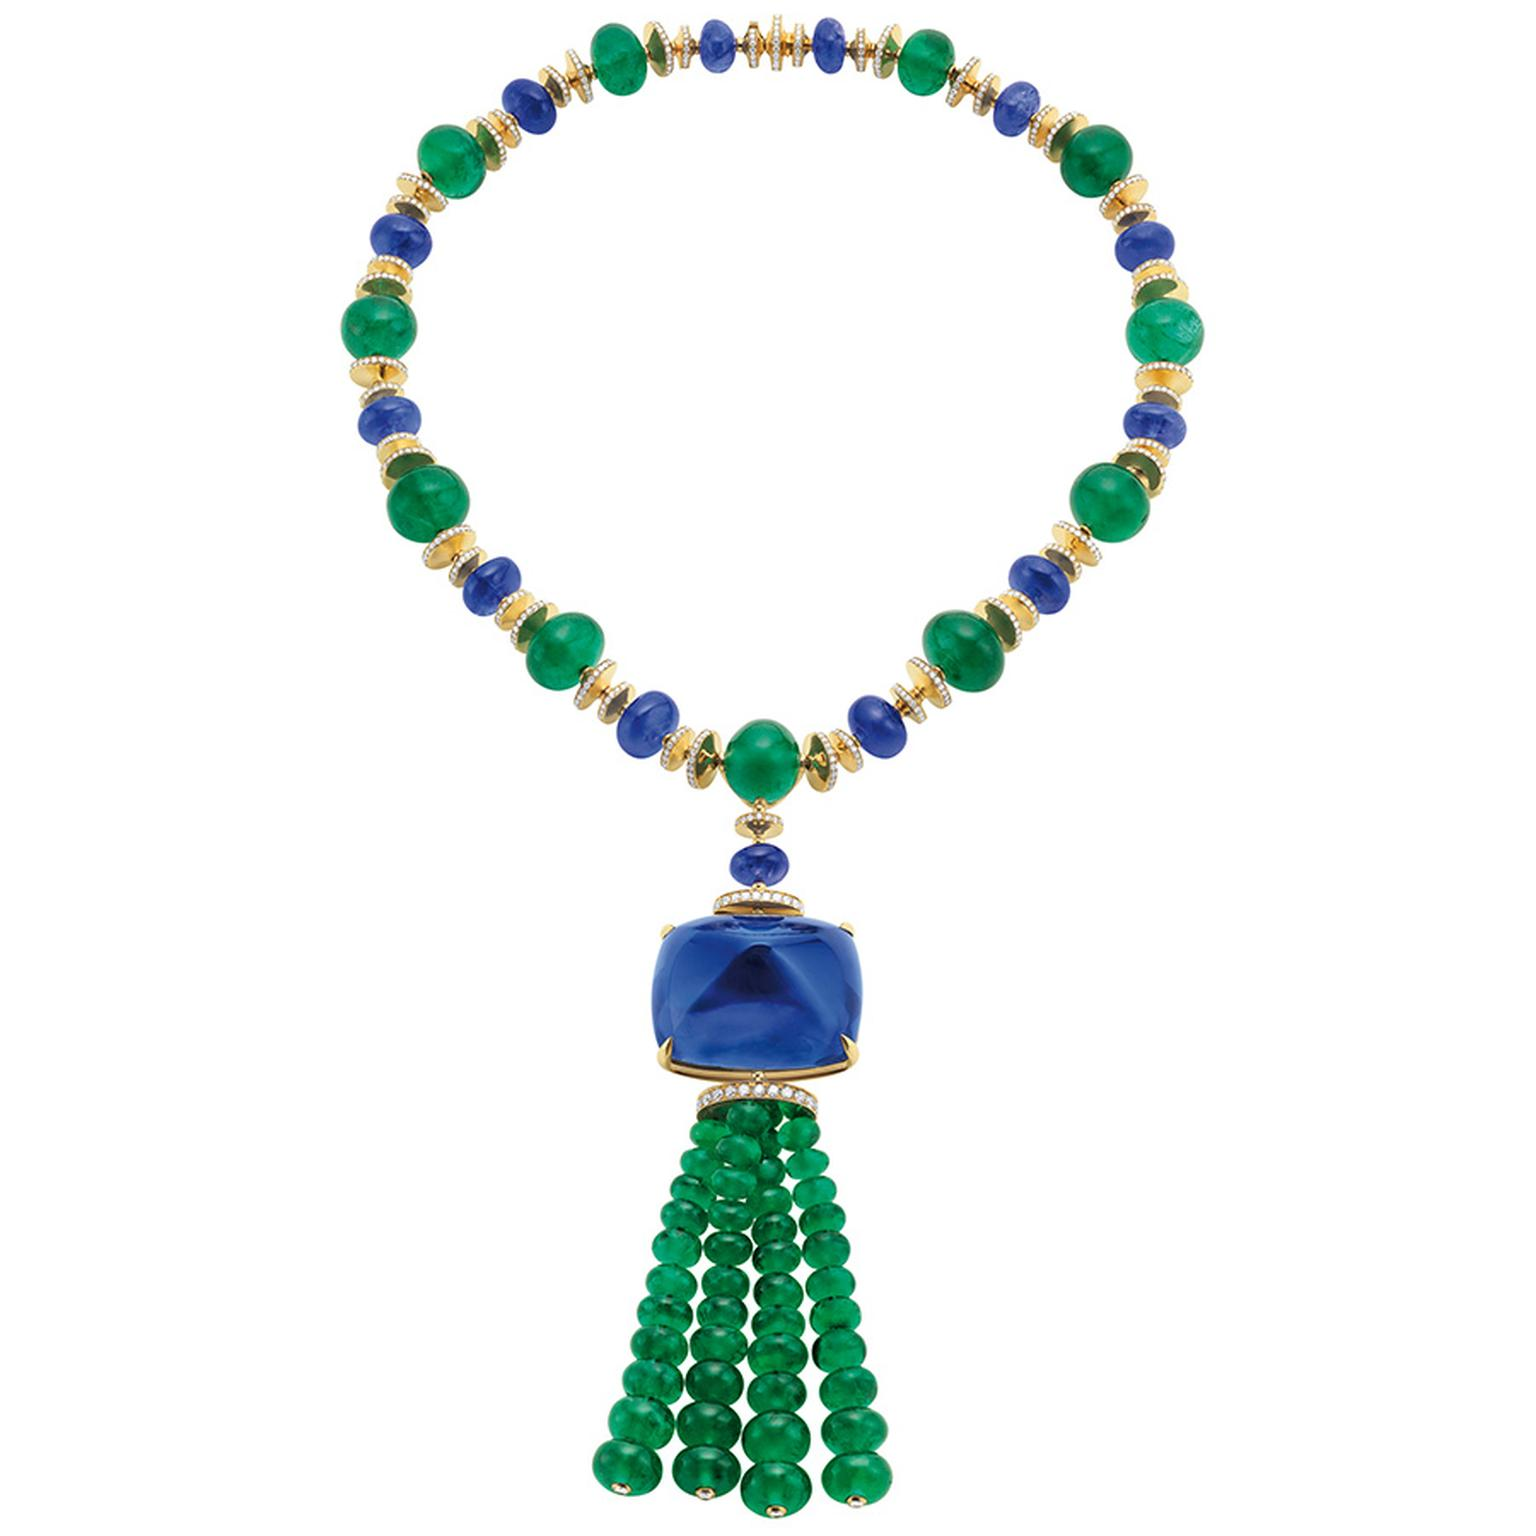 Bulgari-Elizabeth-Taylor-Emerald-and-Sapphire-necklace.jpg